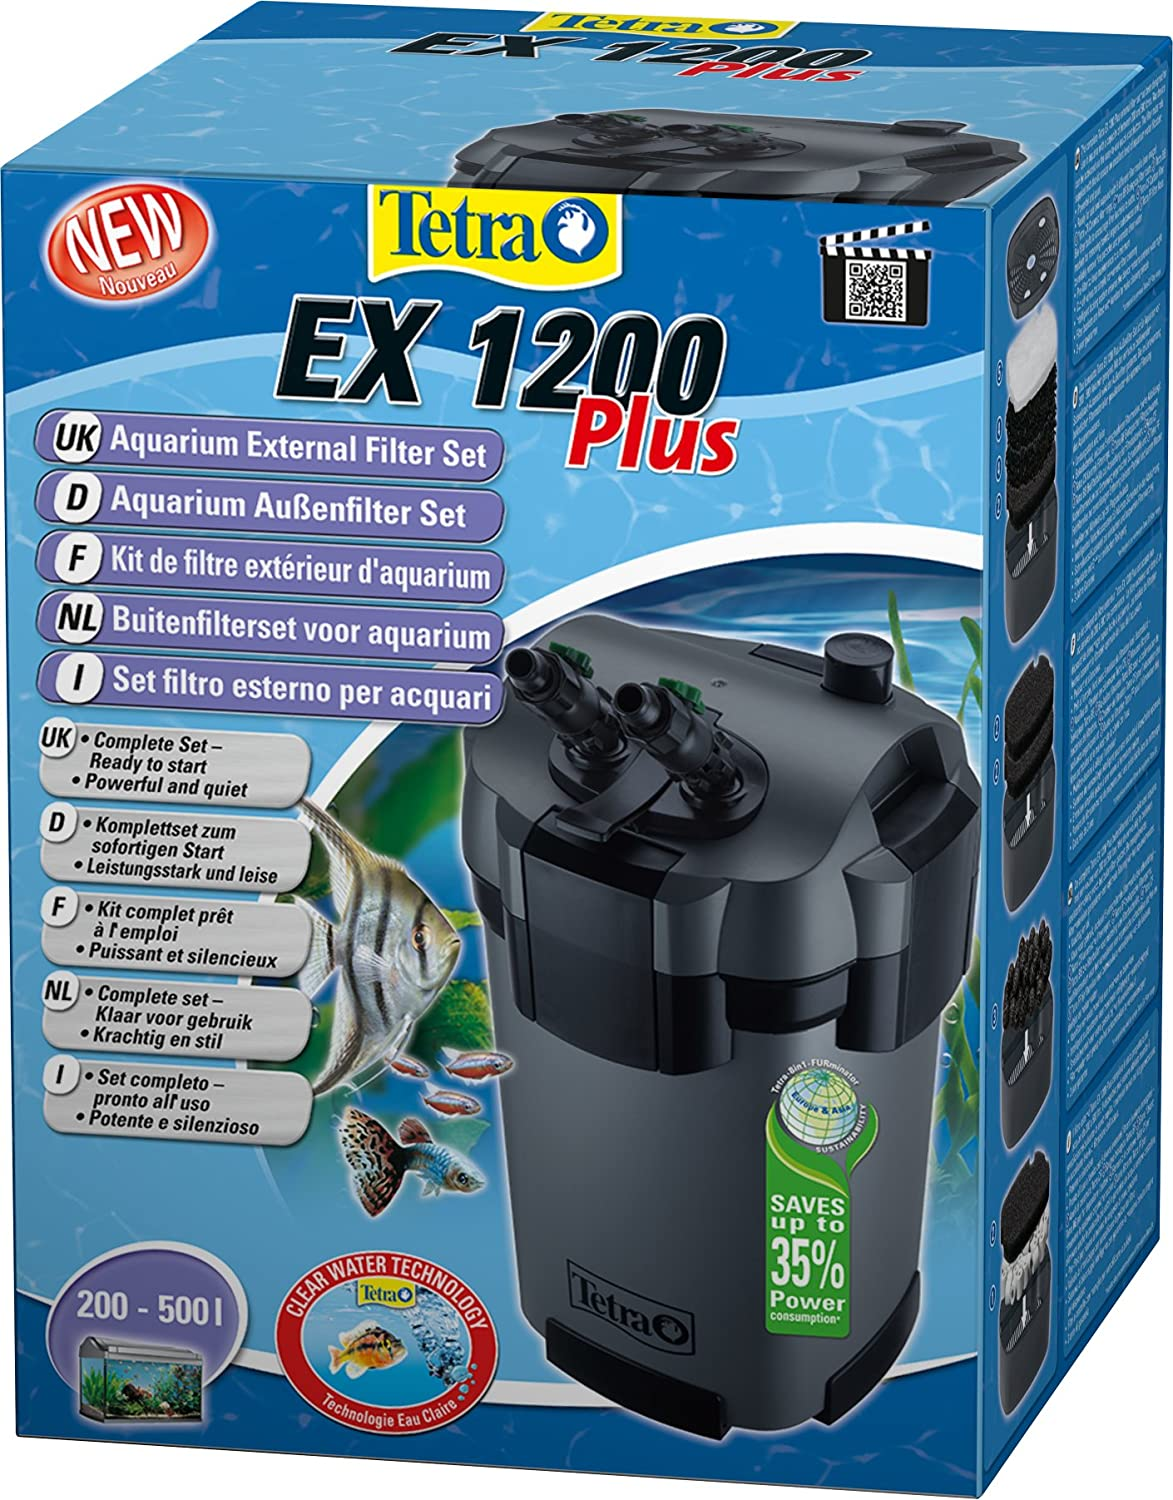 81 hGpfR69L._SL1500_ tetra tec ex 700 external filter amazon co uk pet supplies  at bakdesigns.co